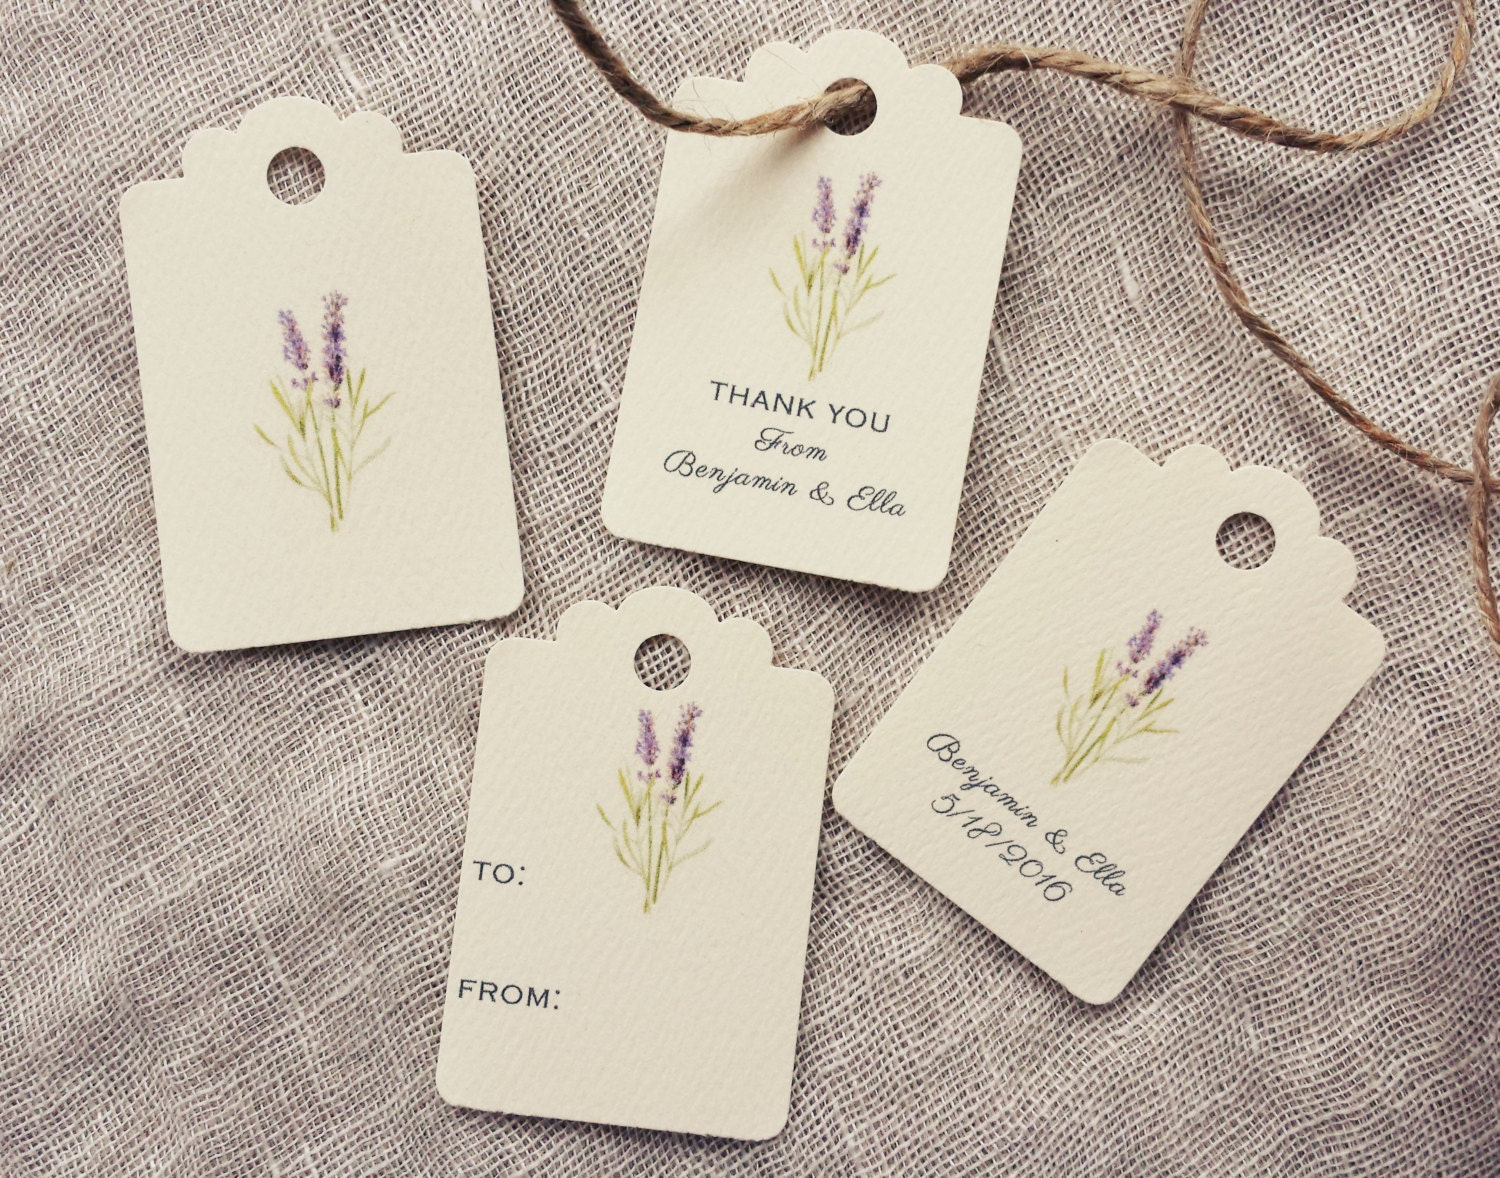 Favor Tag Gift Tag Lavender Wedding from KayleighDuMond on Etsy Studio